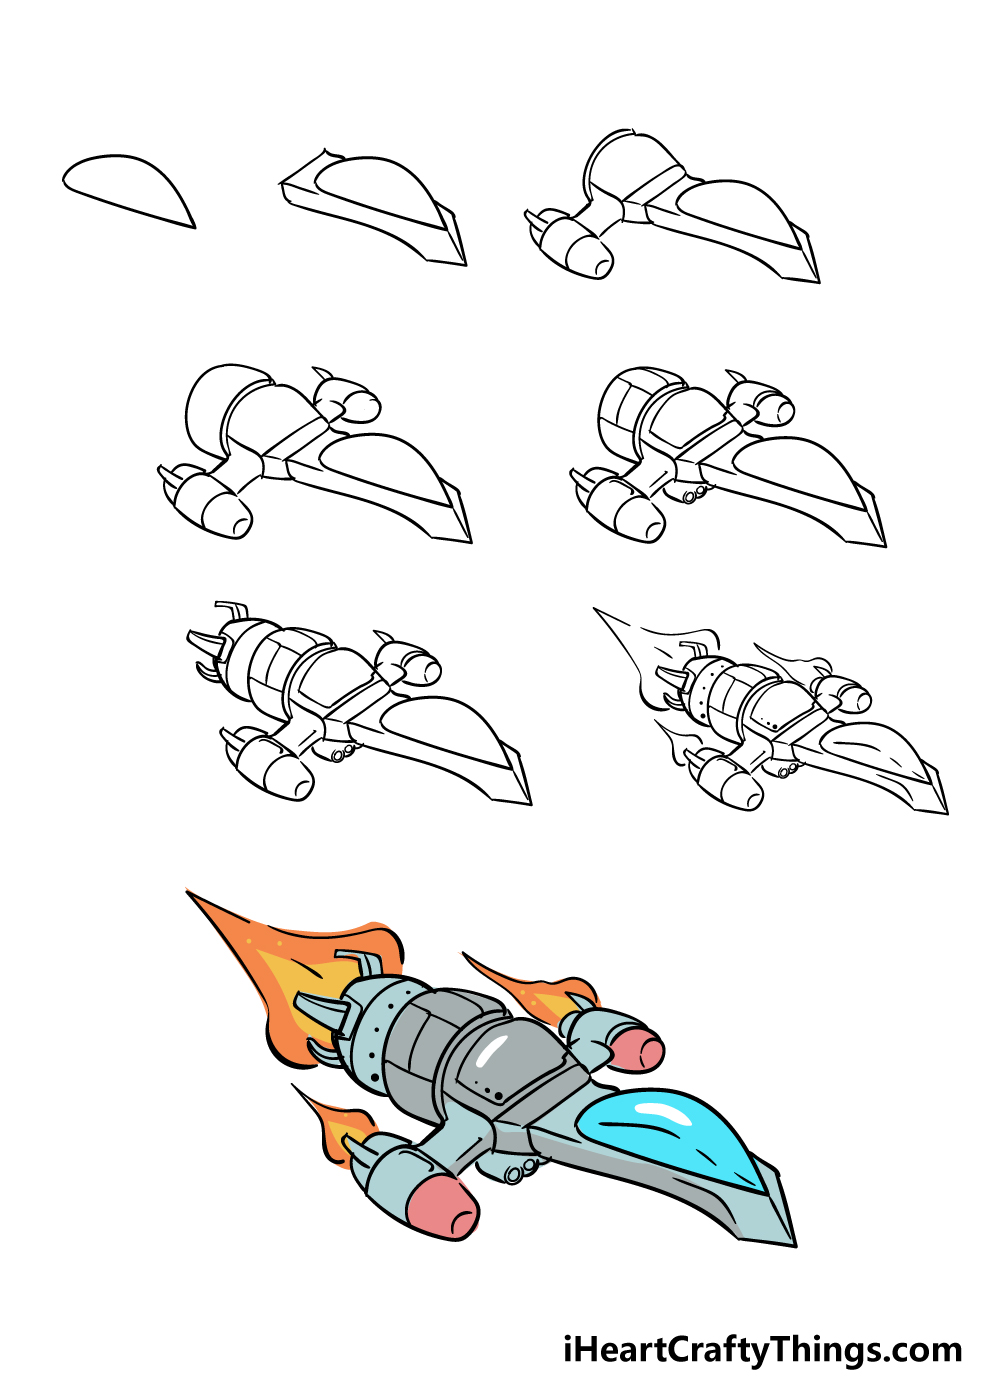 how to draw a spaceship in 8 steps